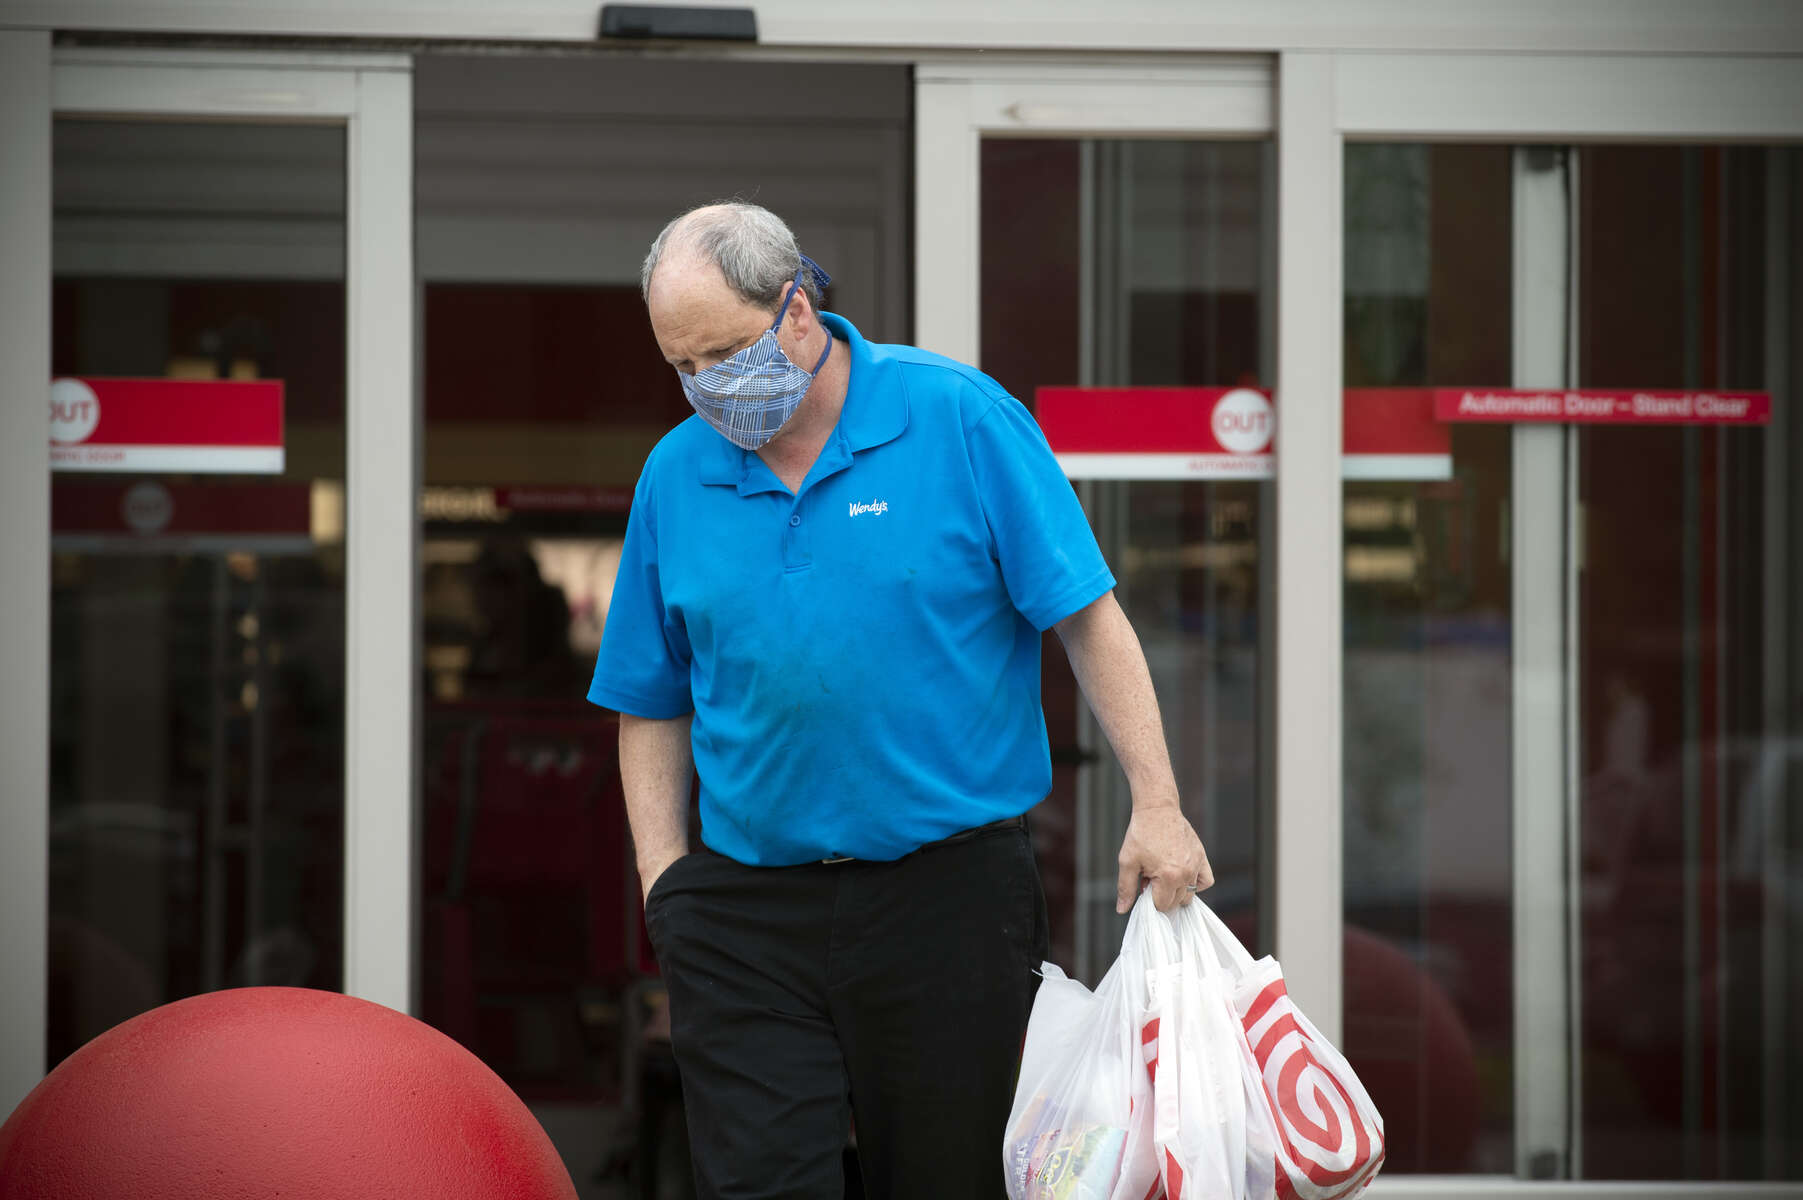 A shopper wearing a hand-crafted face mask as protection against the Covid-19 virus exists a grocery store with just a few items.